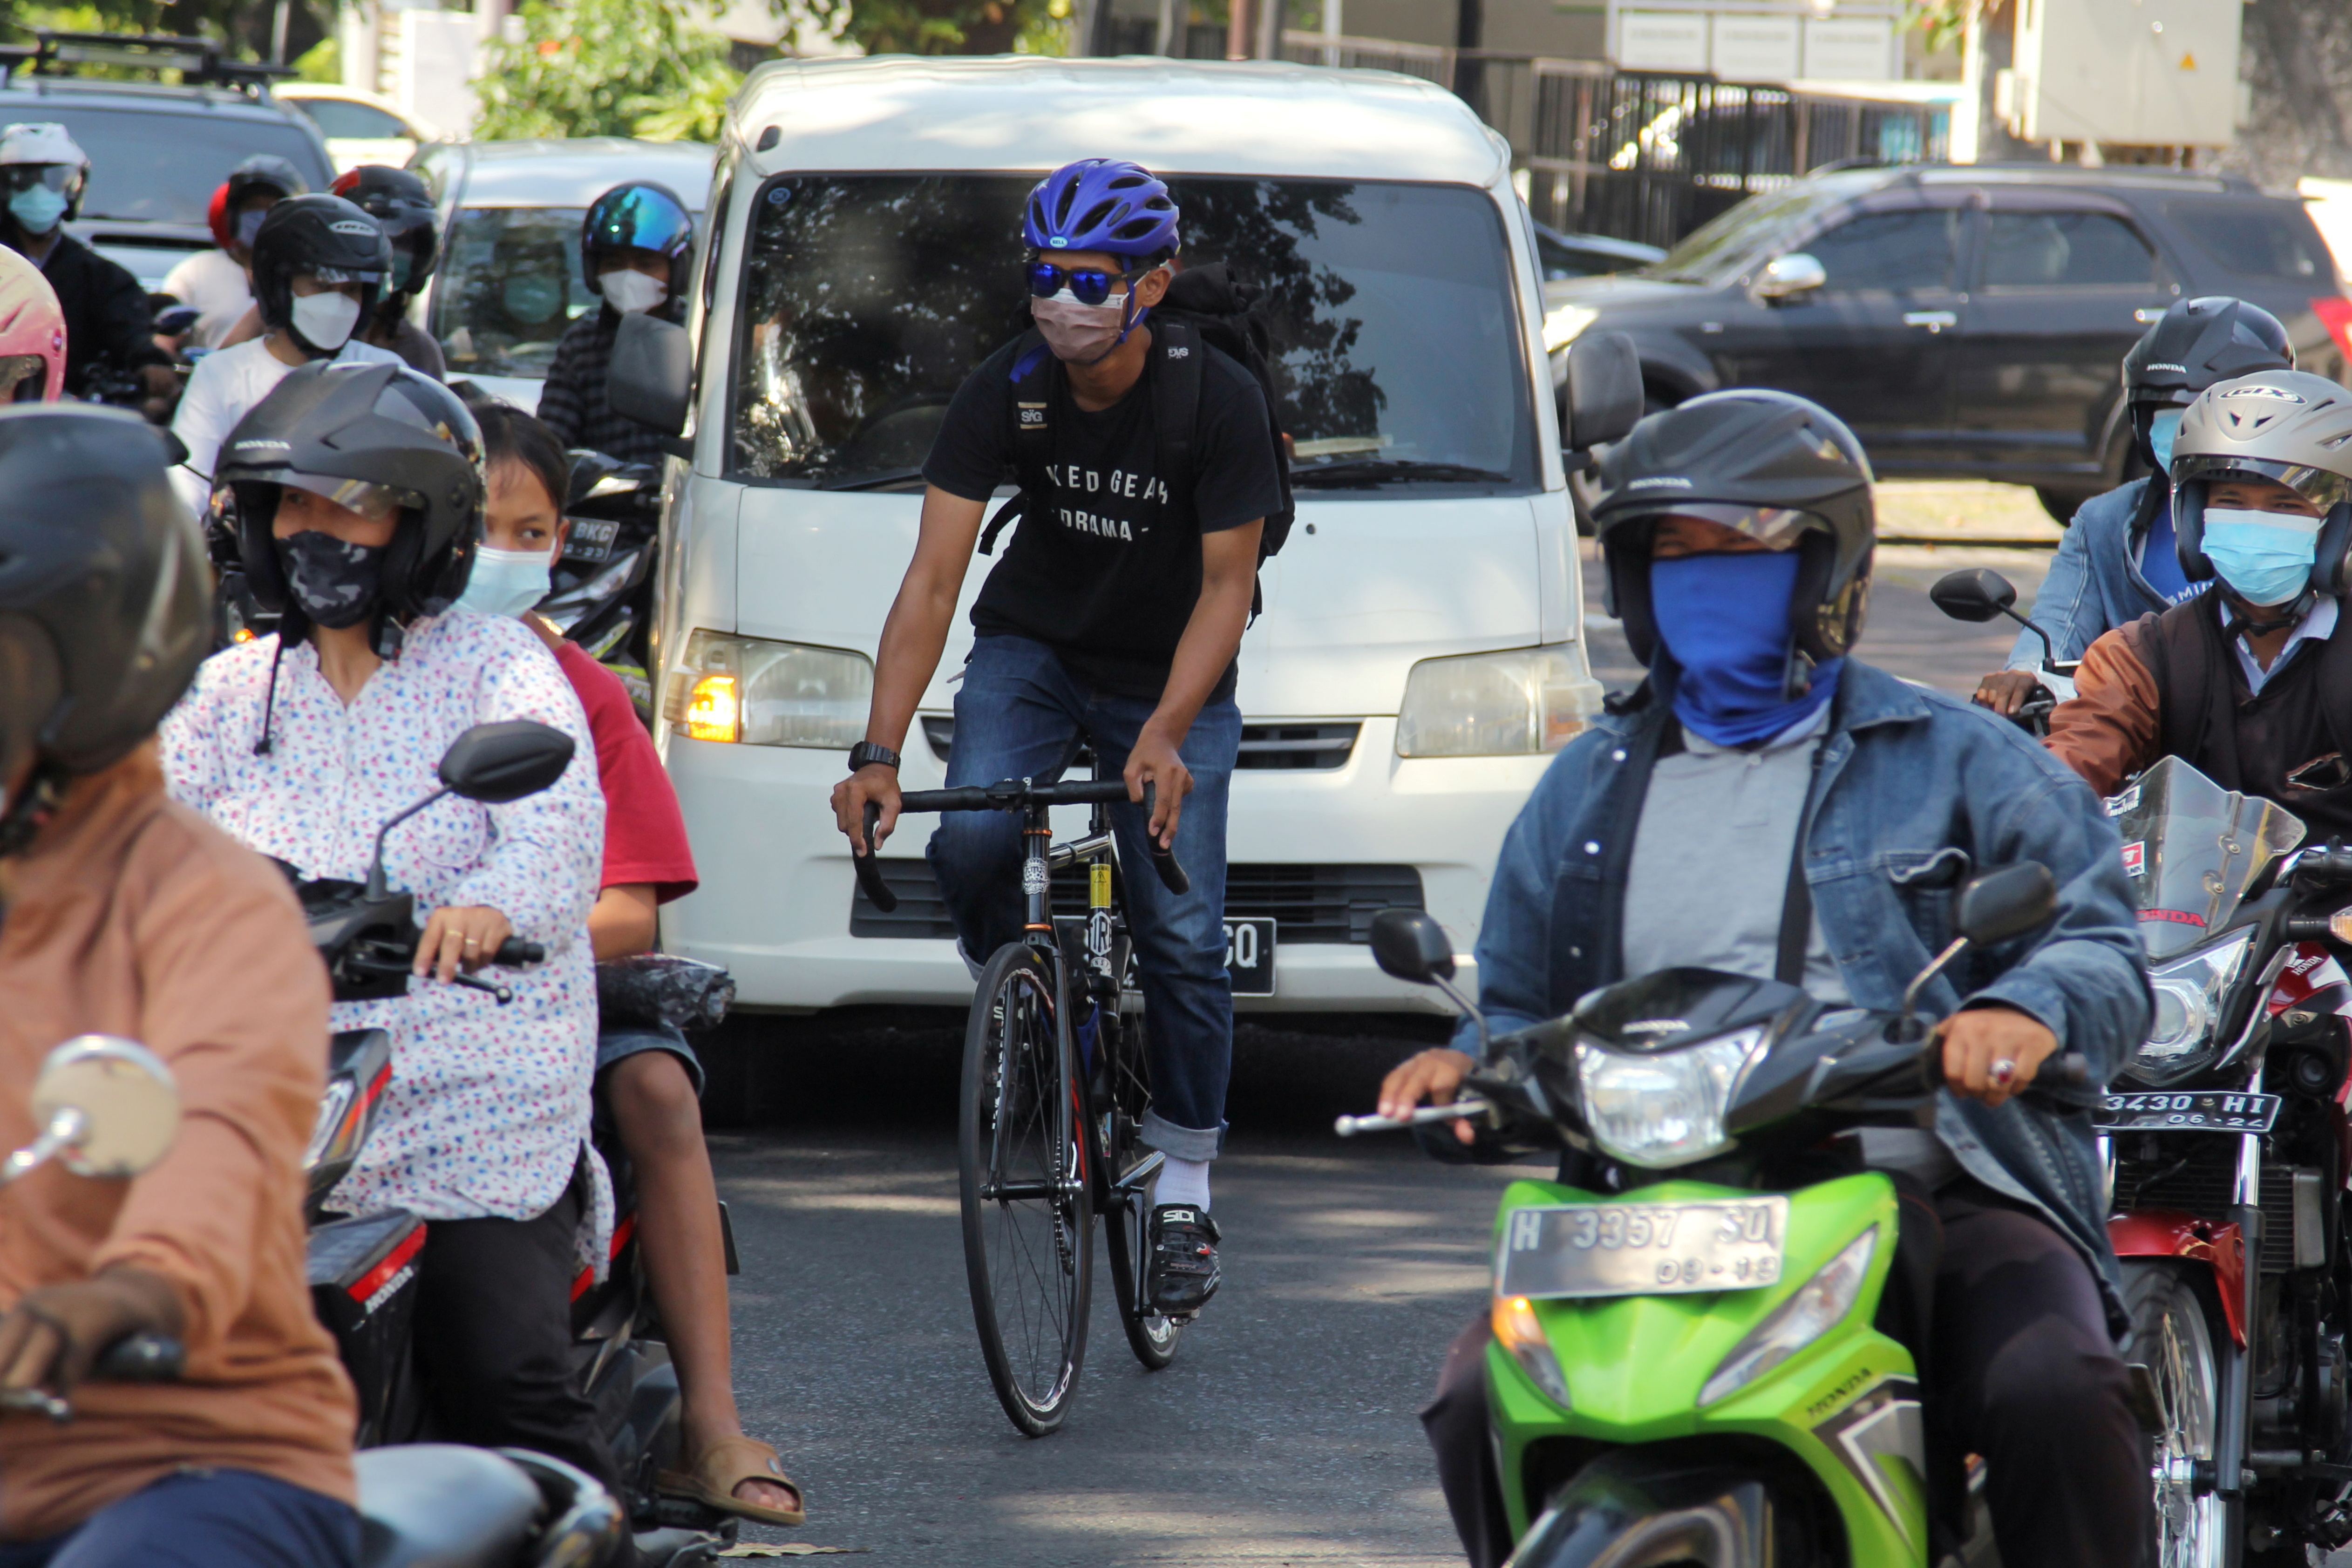 Arrahman Surya Atmaja, a-35-year-old cyclist rides a bicycle through a road on a delivery from a pharmacy to a person self-isolating from the coronavirus disease (COVID-19) in Semarang, Central Java province, Indonesia, July 26, 2021. REUTERS/Budi Purwanto